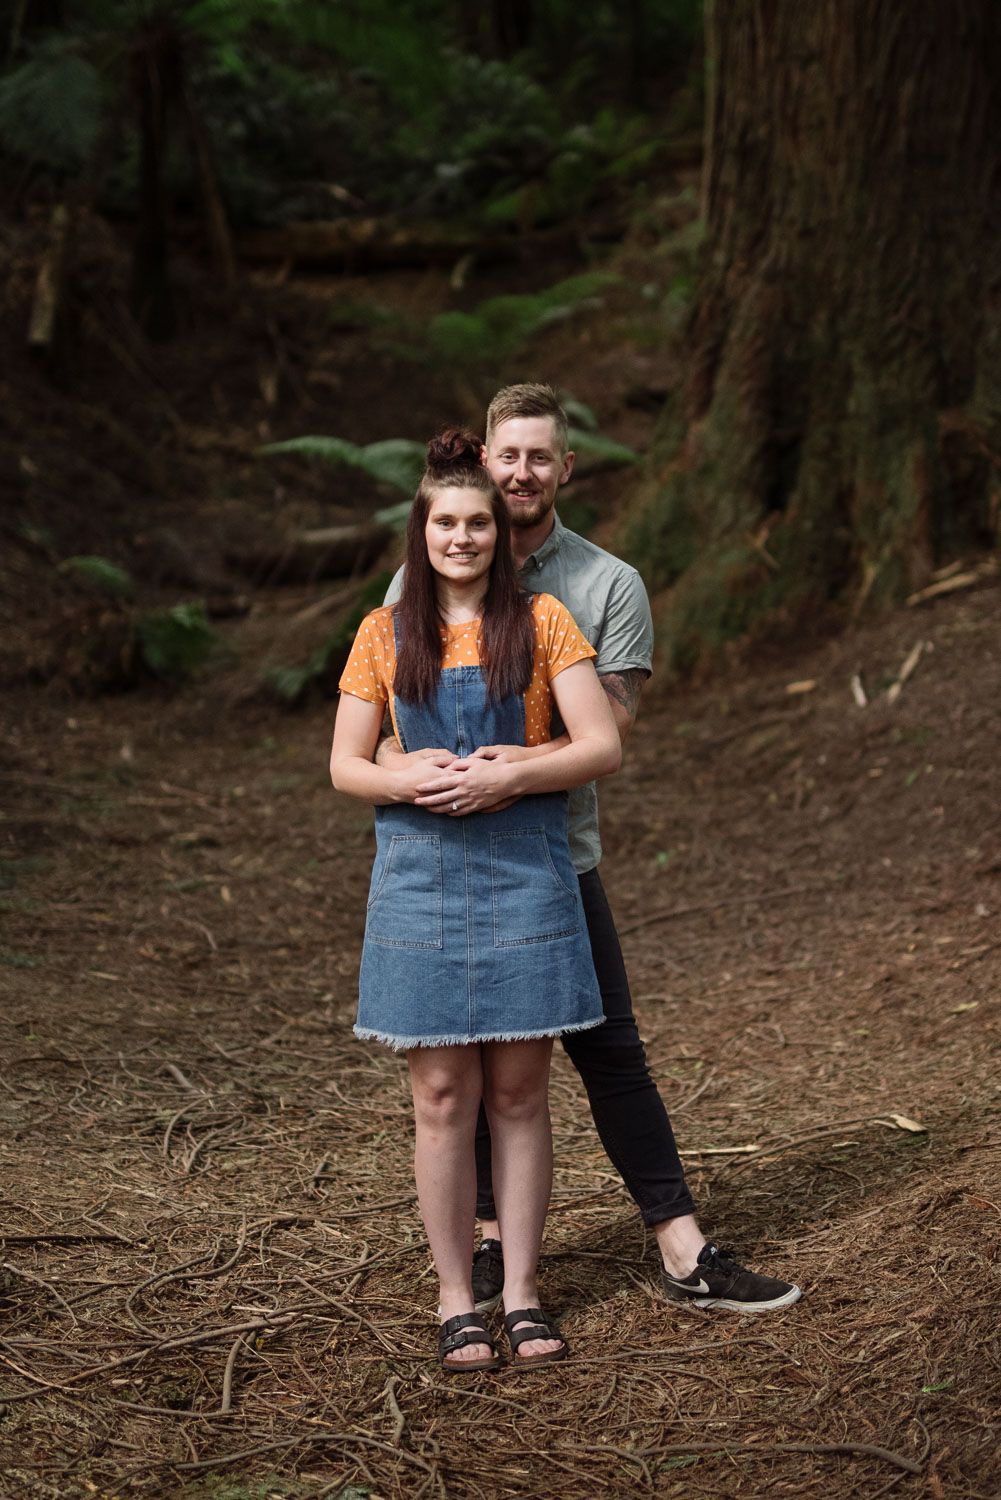 Engaged couple's portrait